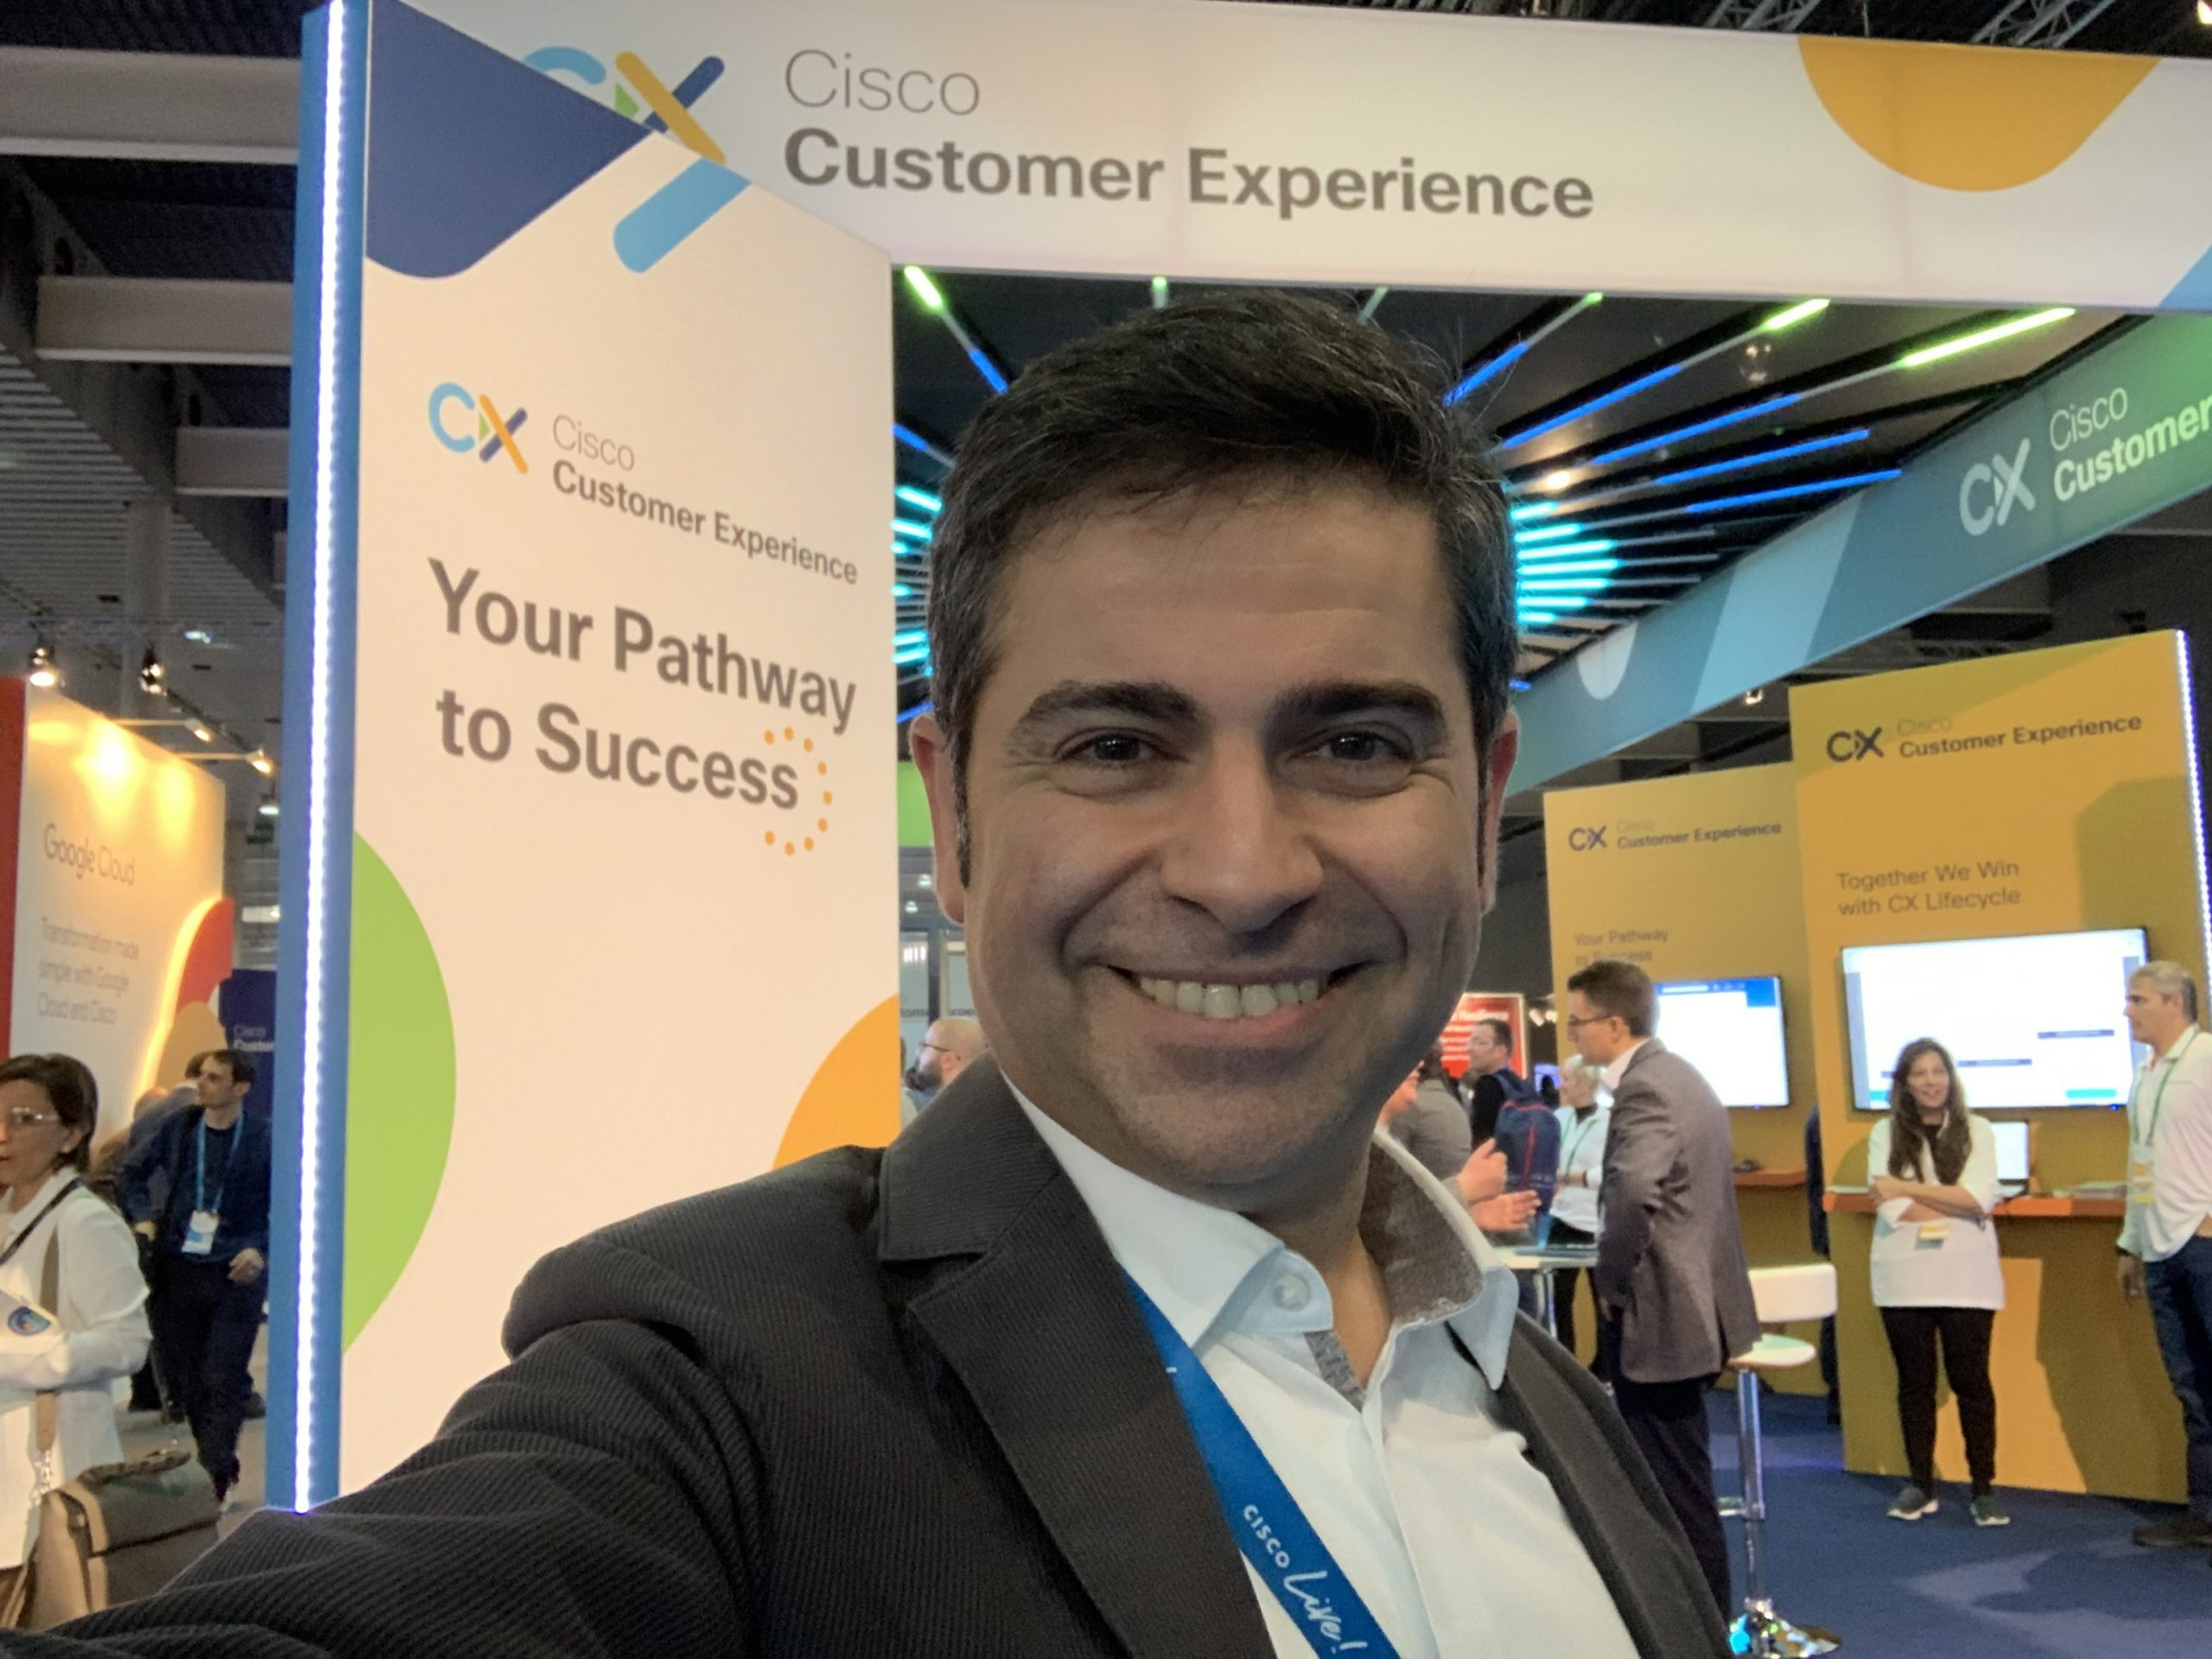 Ahmet at the Cisco Booth